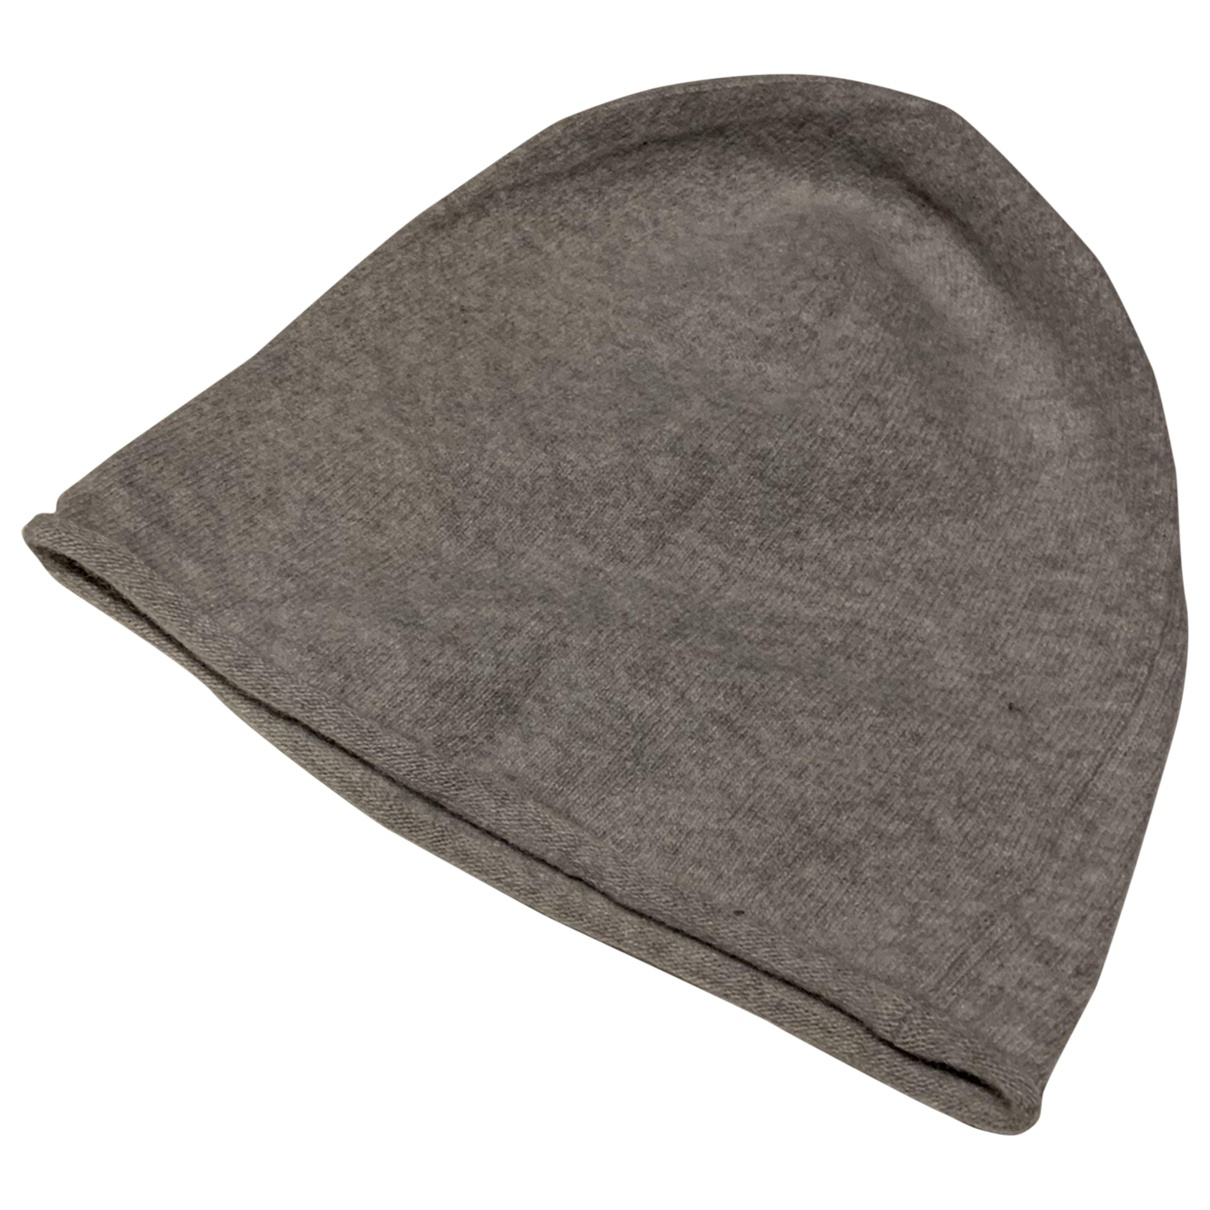 Non Signé / Unsigned \N Grey Cashmere hat & pull on hat for Men S International